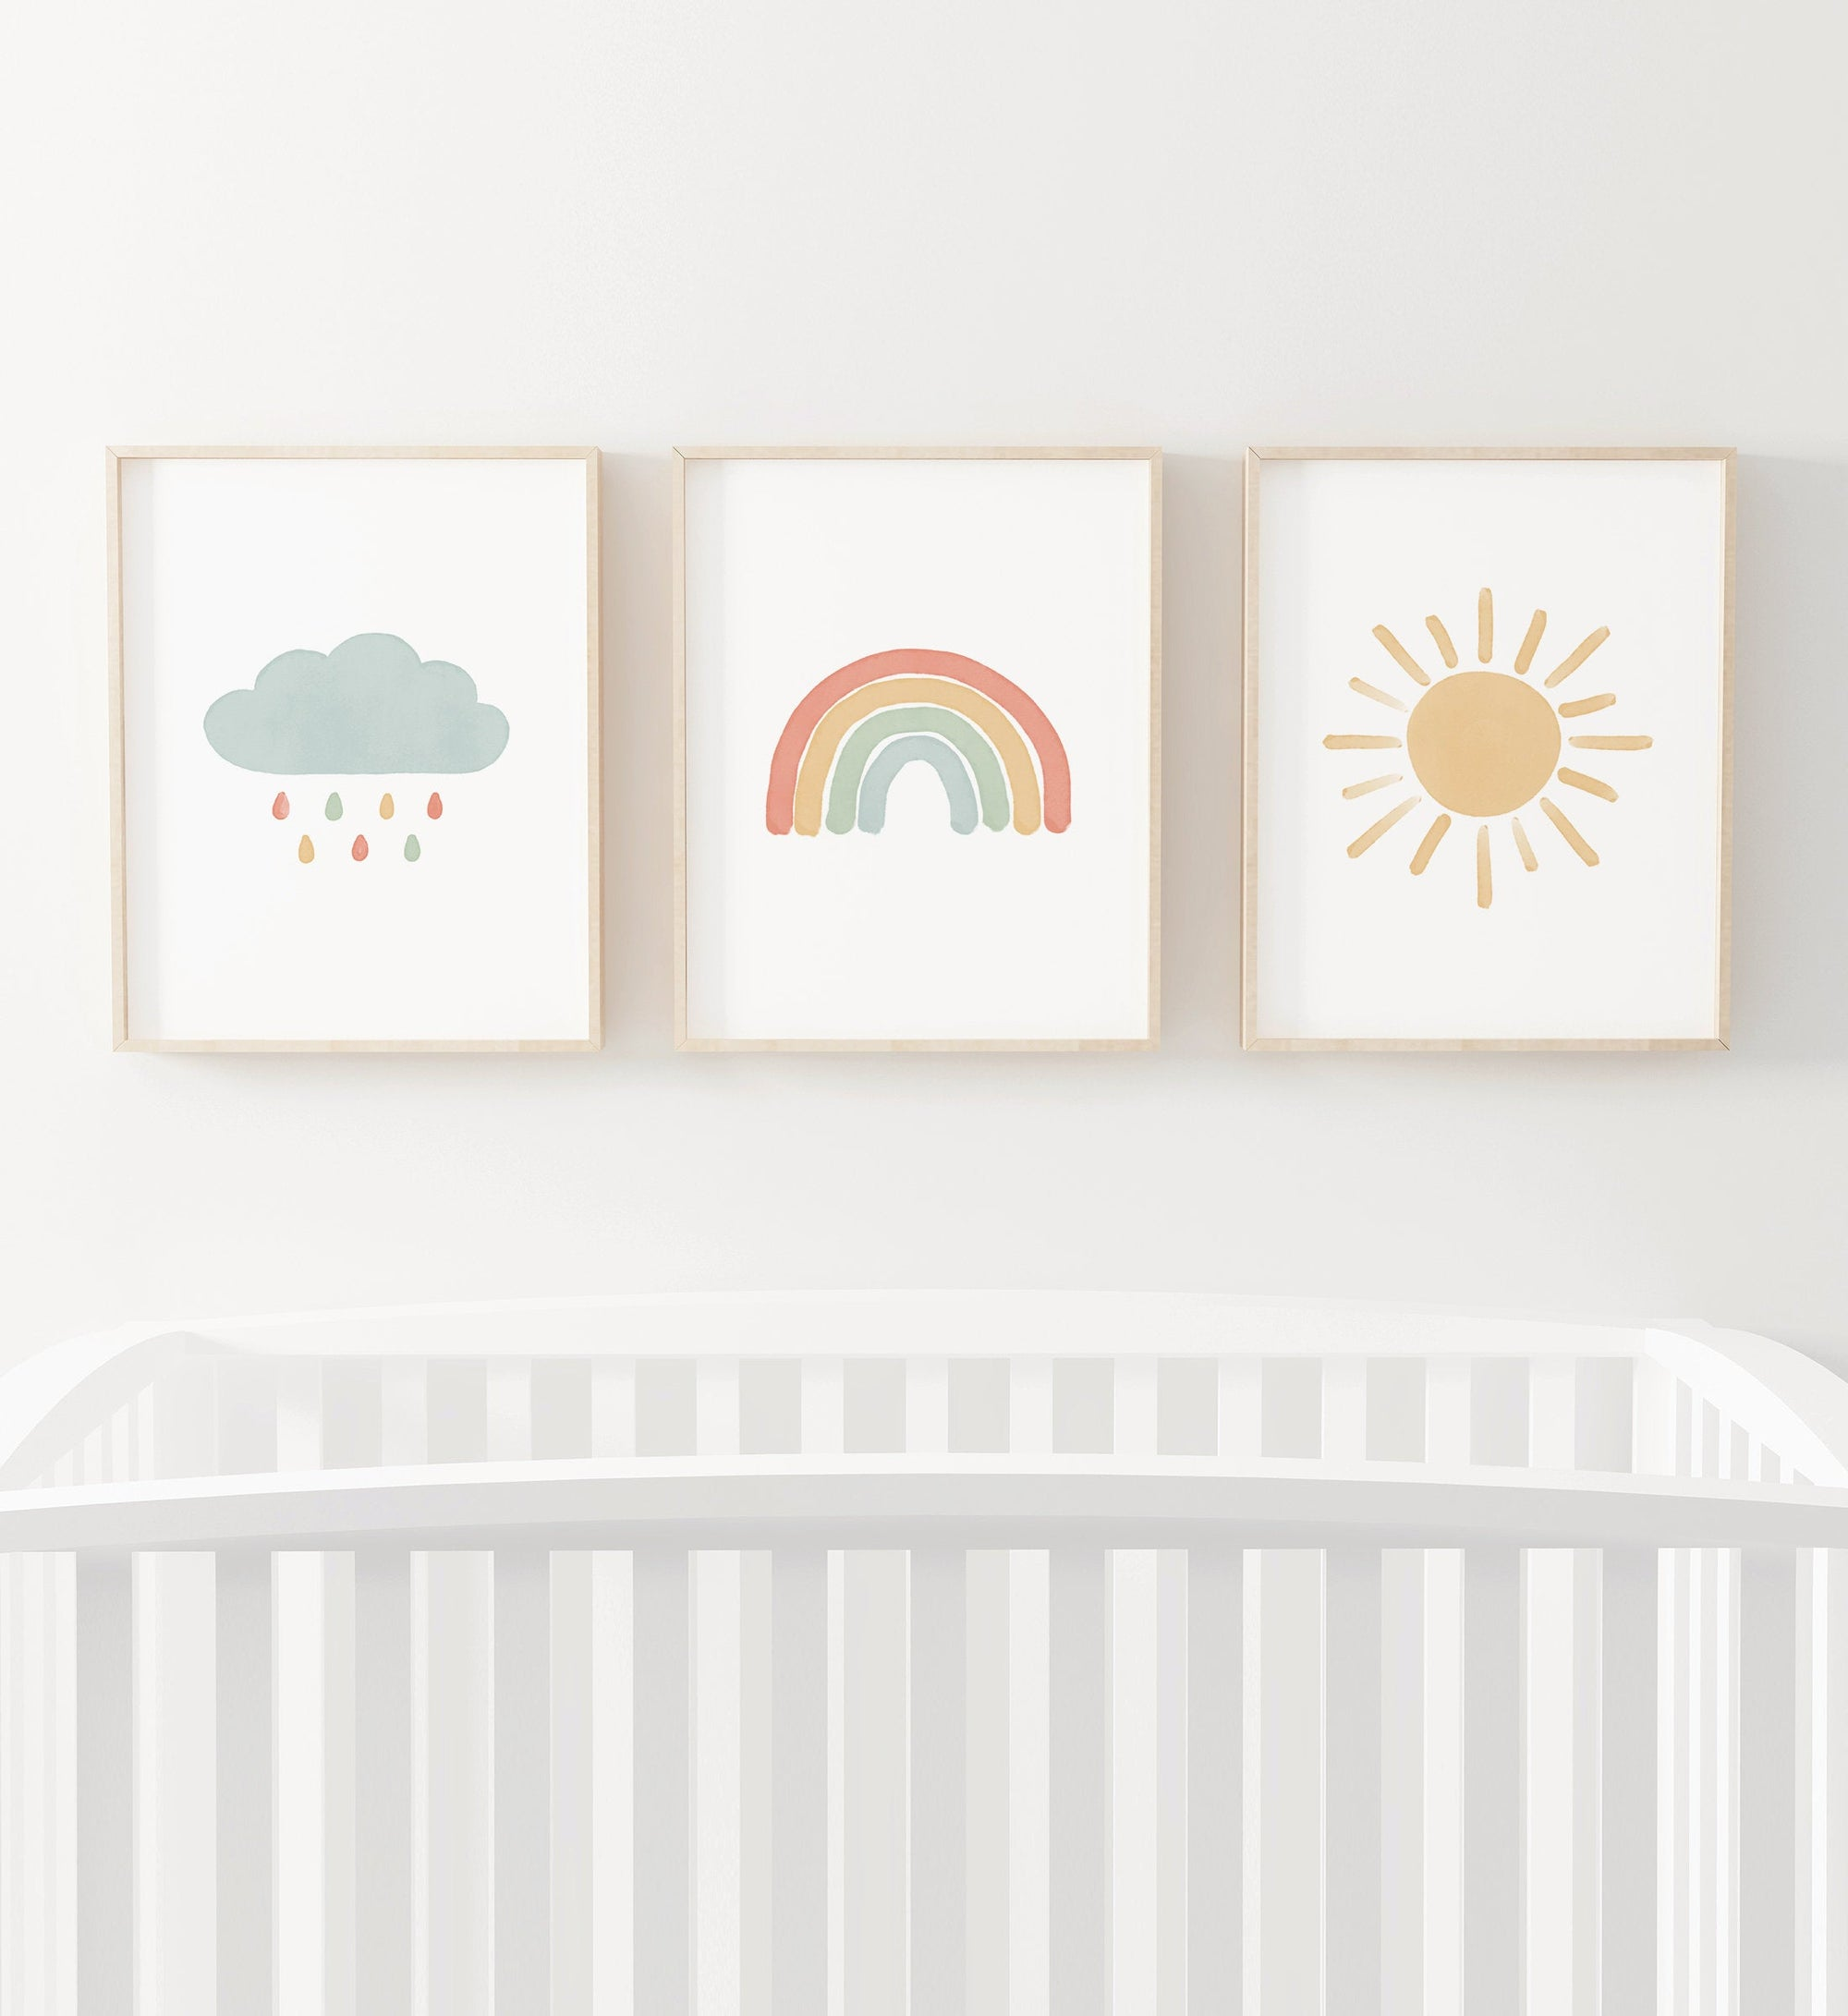 Rainbow, Cloud, and Sun Set of 3 Prints - Simple Rainbow